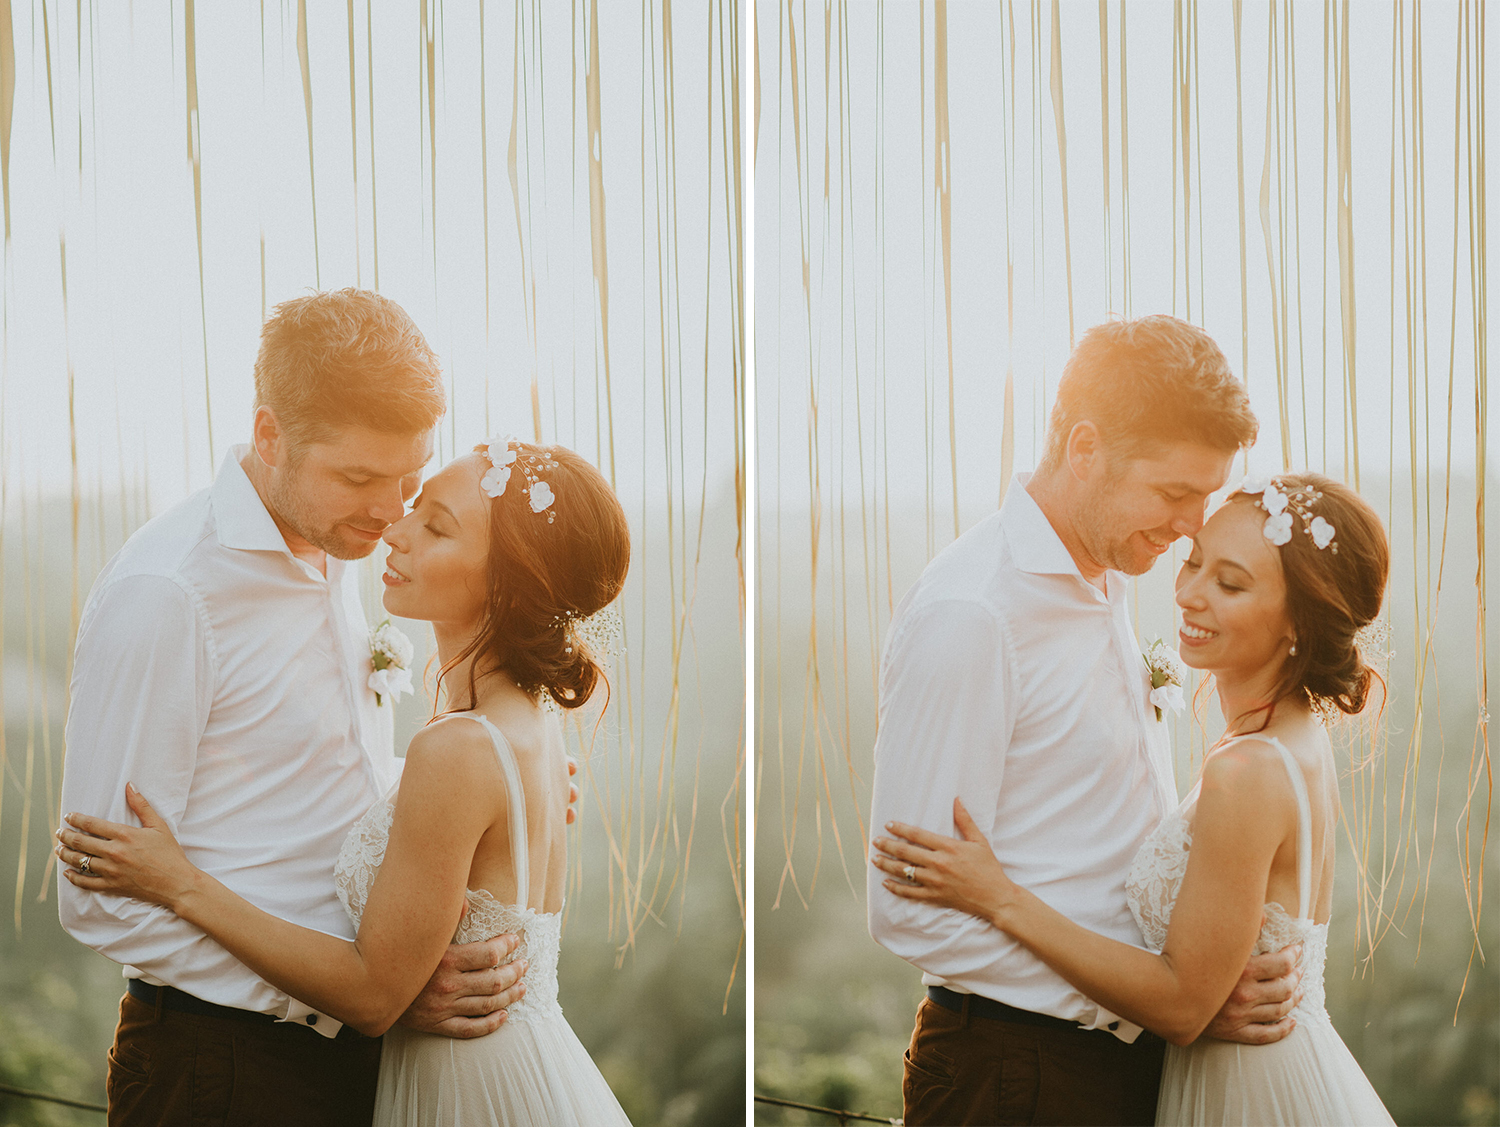 bali-wedding-ubud-wedding-wedding-destination-diktatphotography-kadek-artayasa-elaine-and-glenn-105